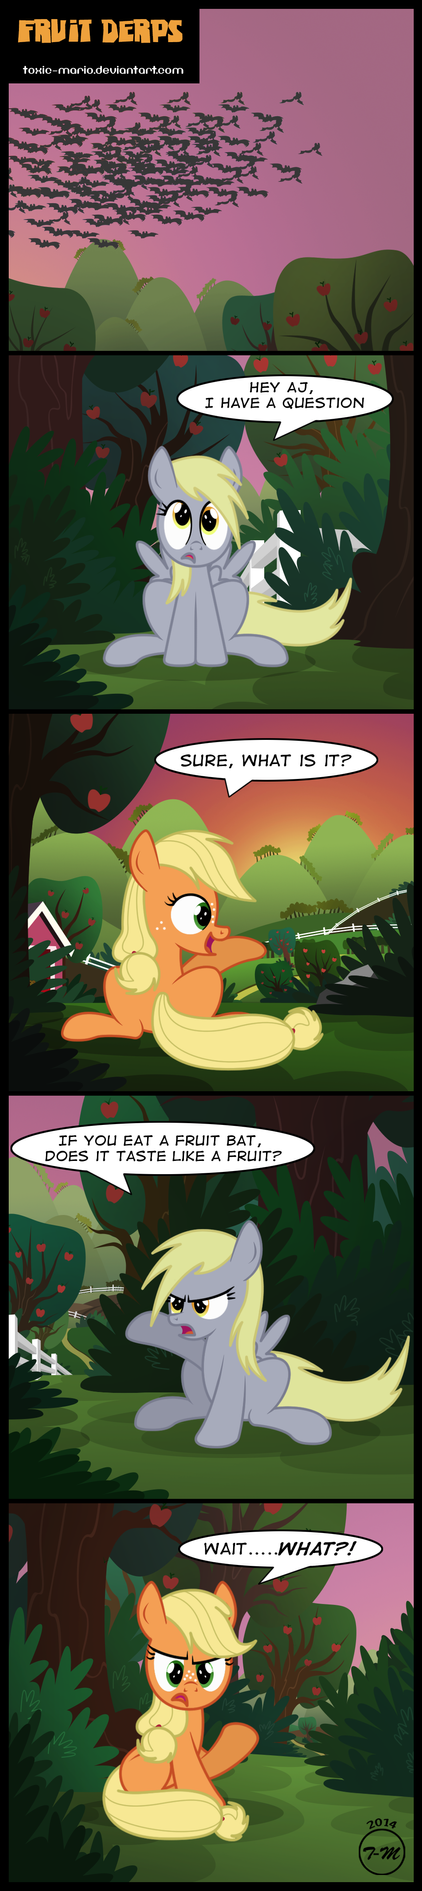 Fruit Derps by Toxic-Mario